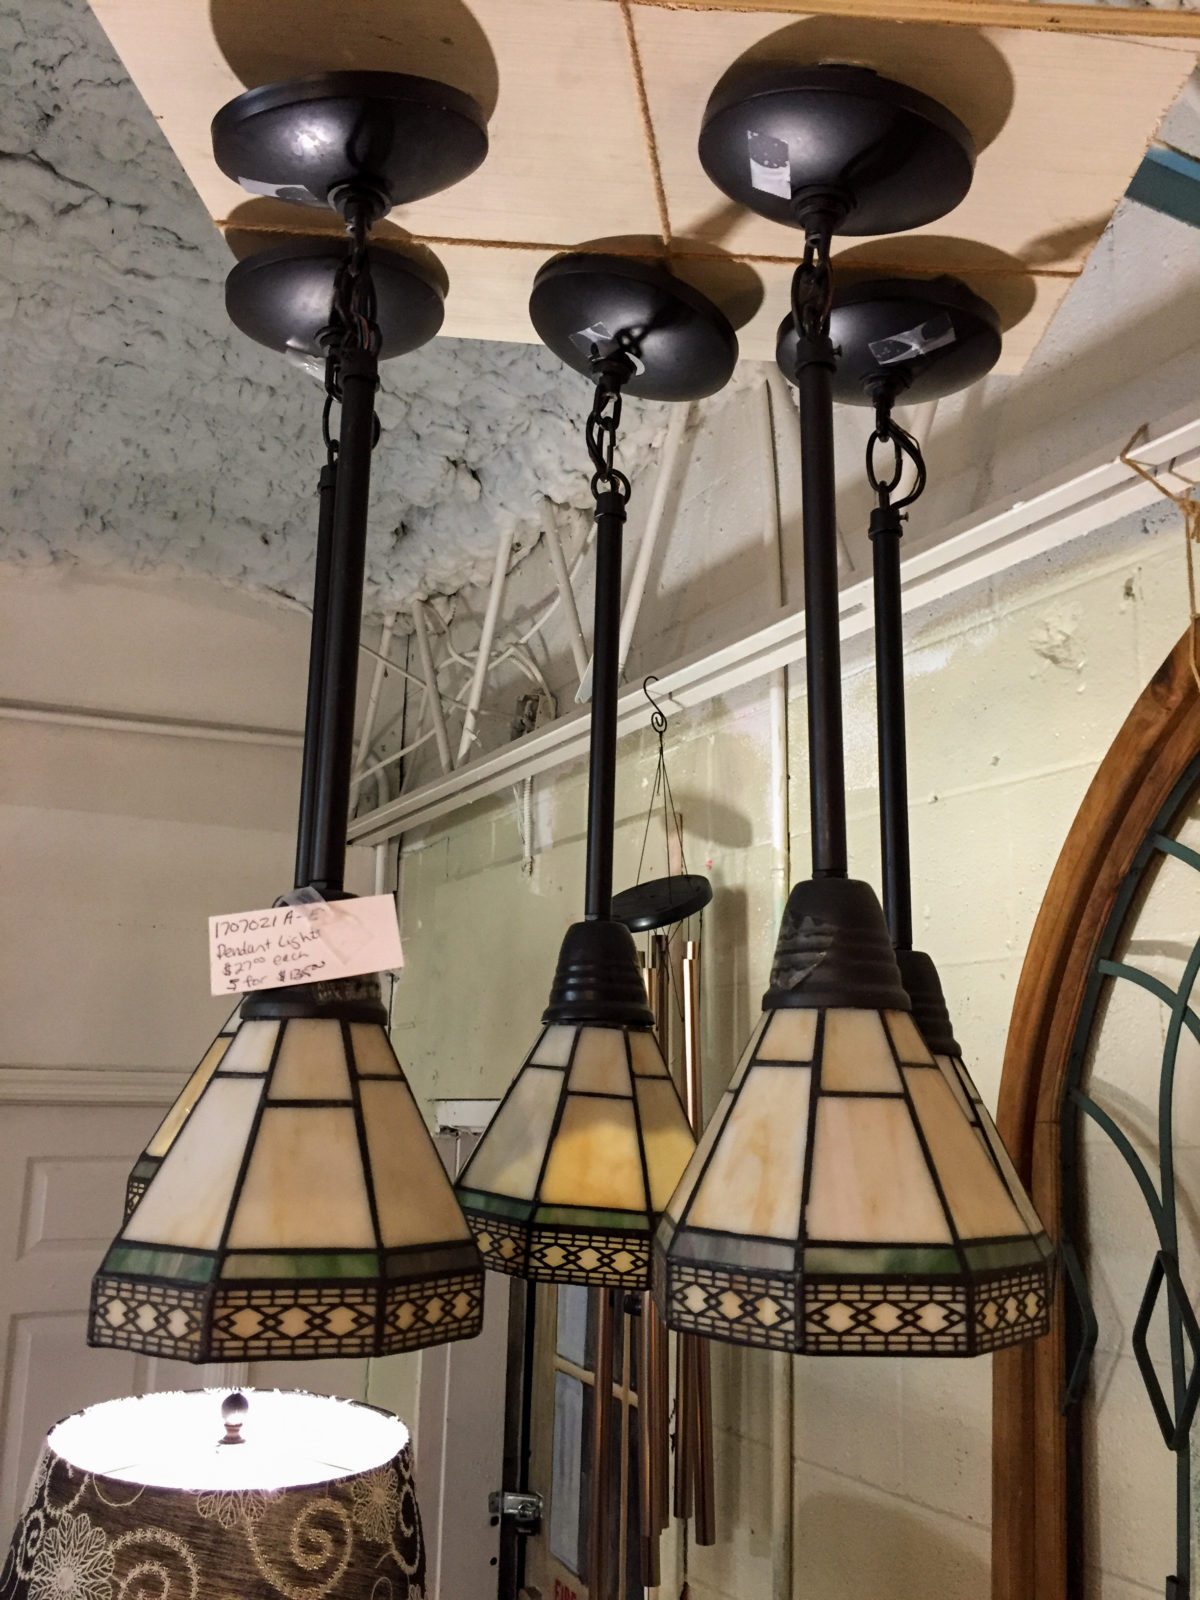 lamps chandelier dining fan lloyd of crafts fixtures modern craftsman size lighting arts exterior bungalow style casablanca wright mission frank light and room pendant antique full ceiling